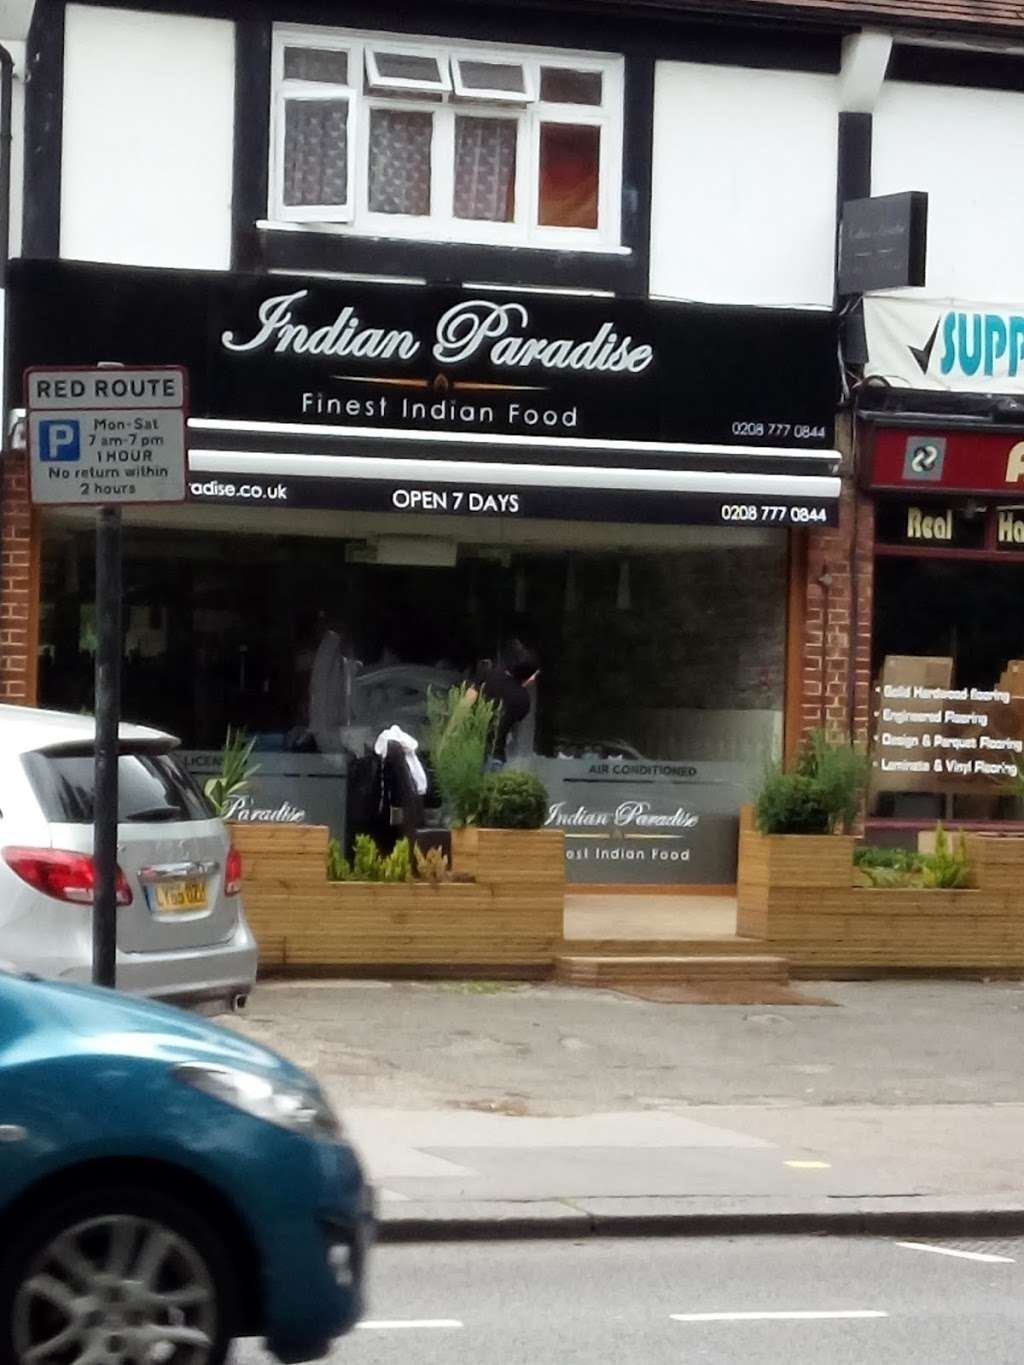 Indian Paradise - restaurant  | Photo 7 of 8 | Address: 576 Wickham Rd, Croydon CR0 8DN, UK | Phone: 020 8777 0844